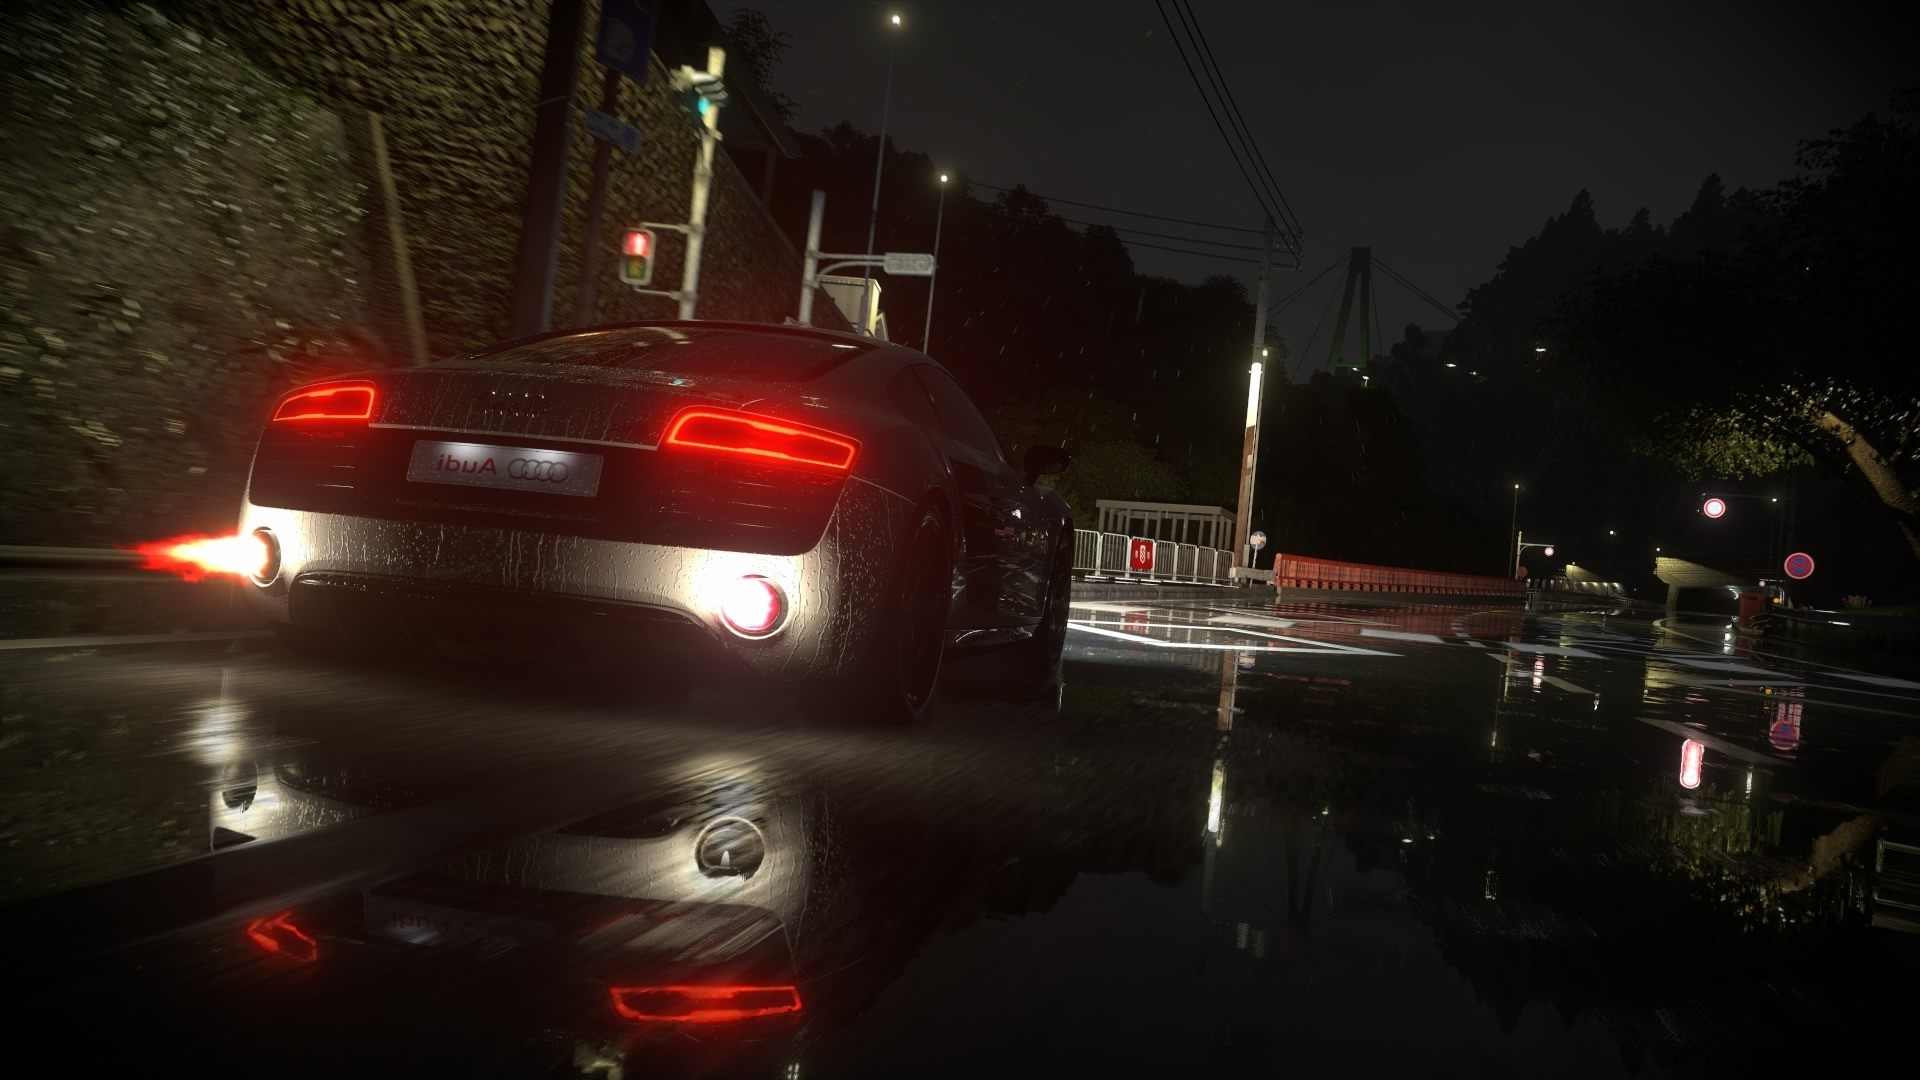 Car 5760x1080 Wallpaper Driveclub Audi V10 Engine Rain Audi R8 Video Games